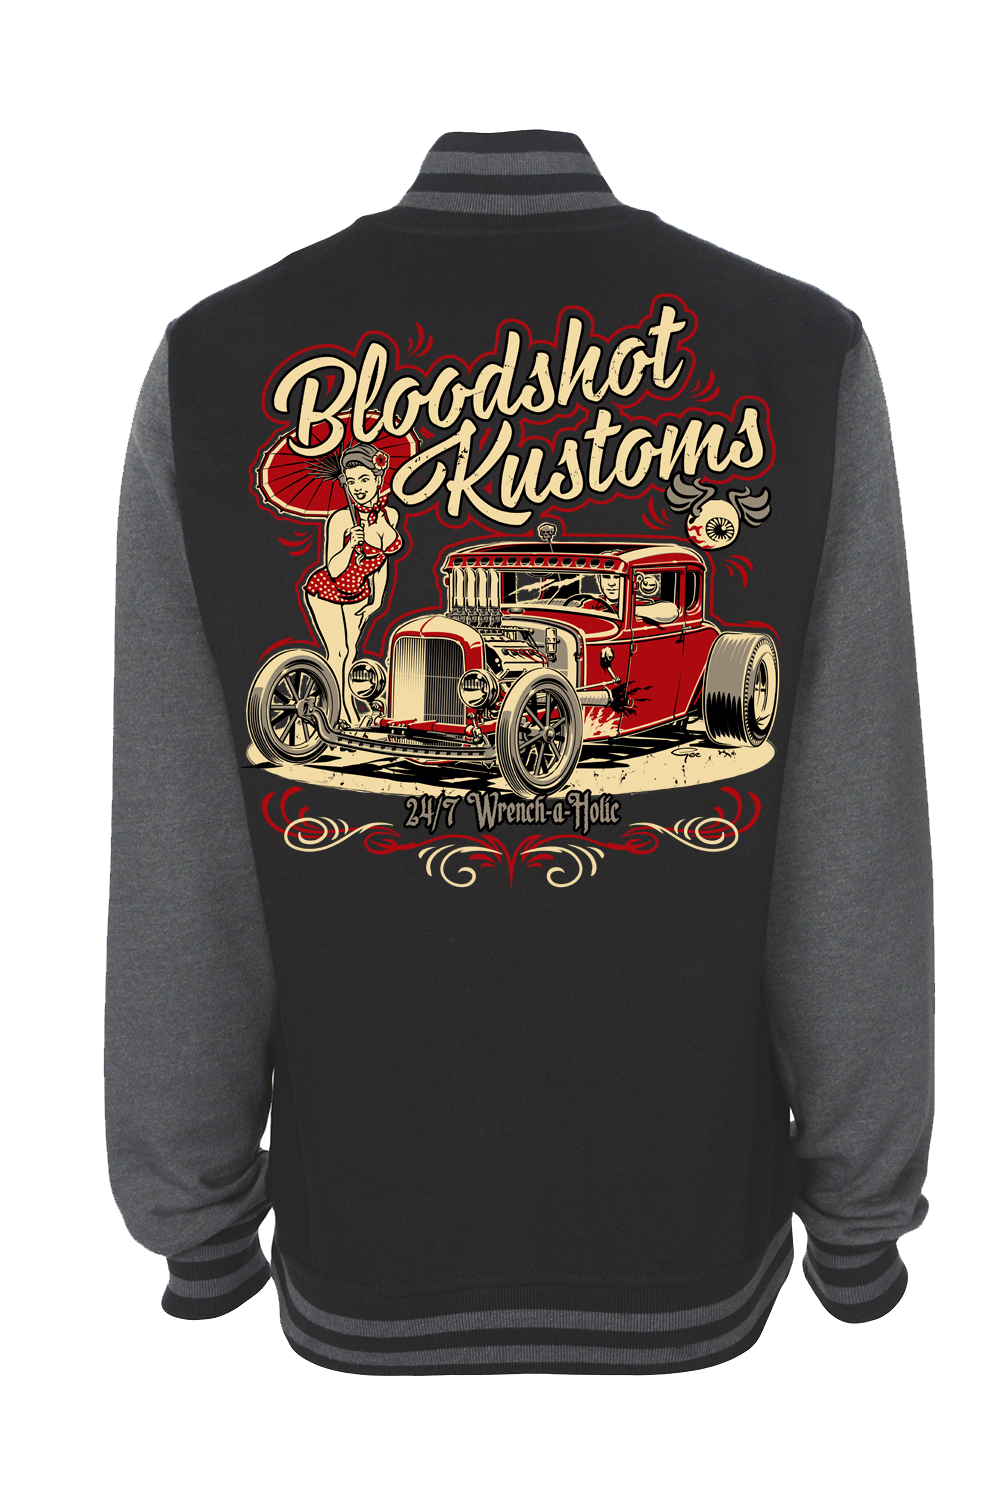 "BLOODSHOT KUSTOM "" Hemi pin up"" VARSITY JACKET  UNISEX by Ger ""Dutch Courage"" Peters artwork"